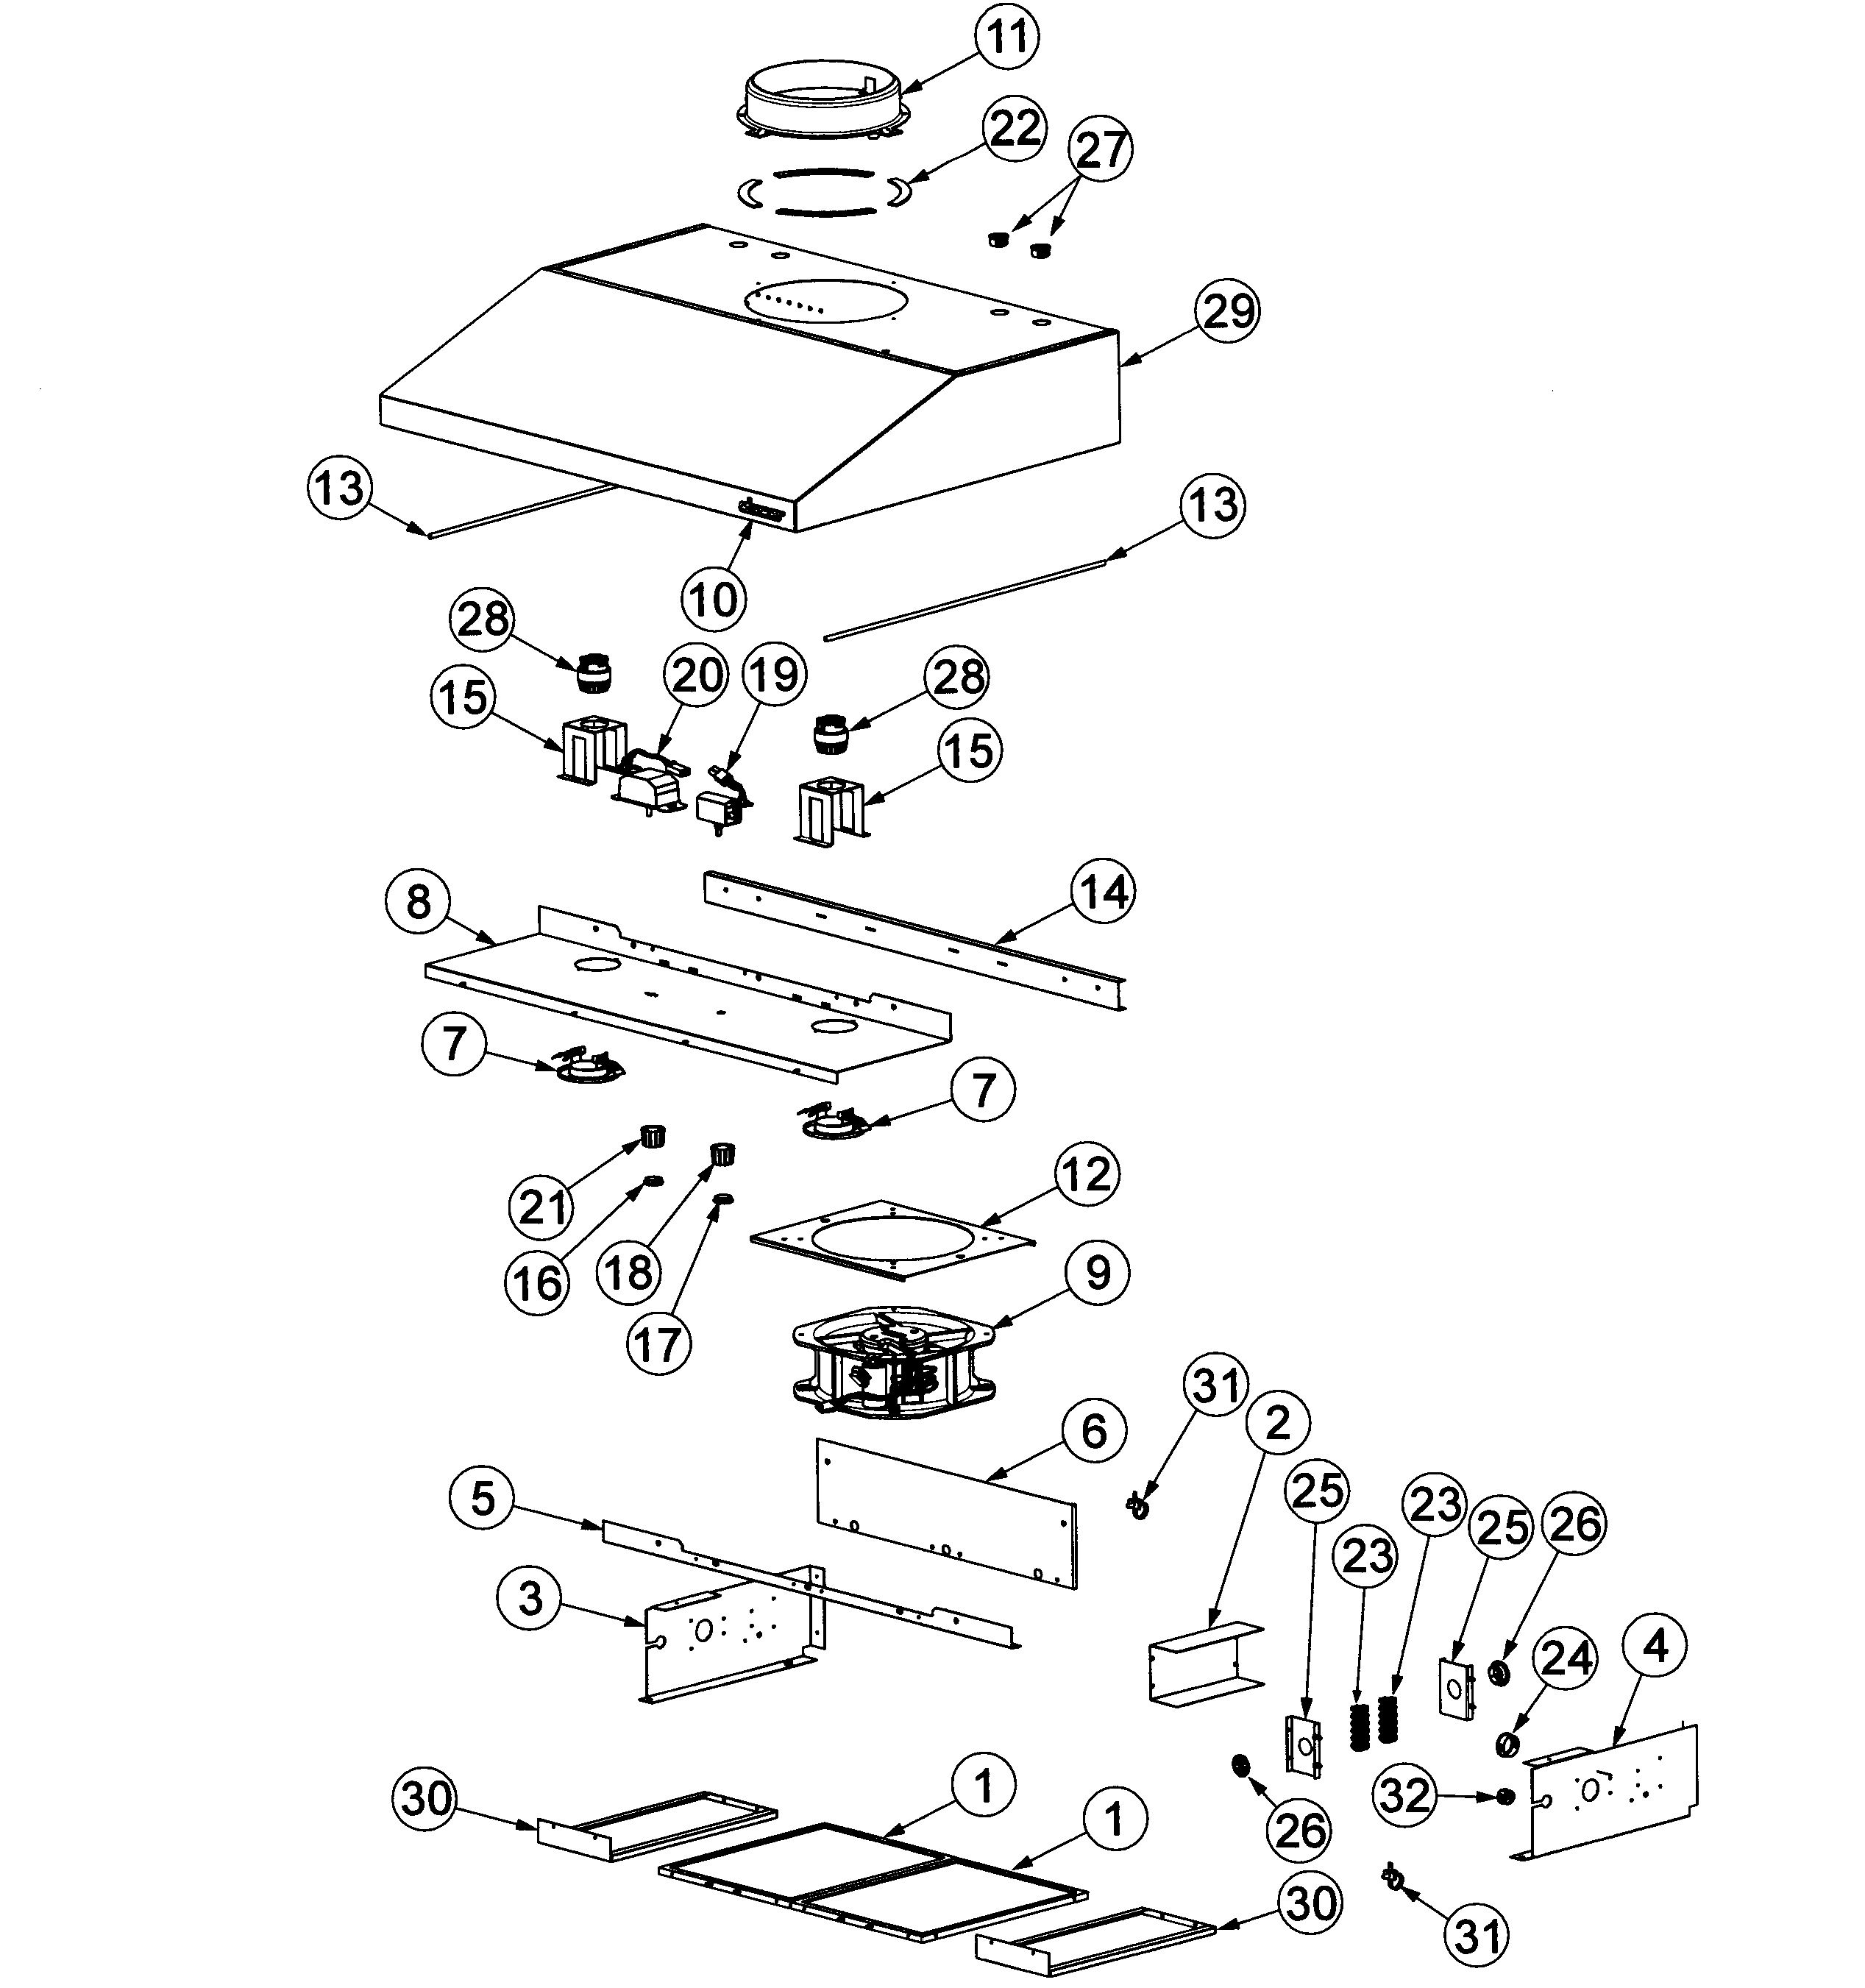 broan range hood wiring diagram 2007 kia spectra radio nutone vent replacement parts engine and